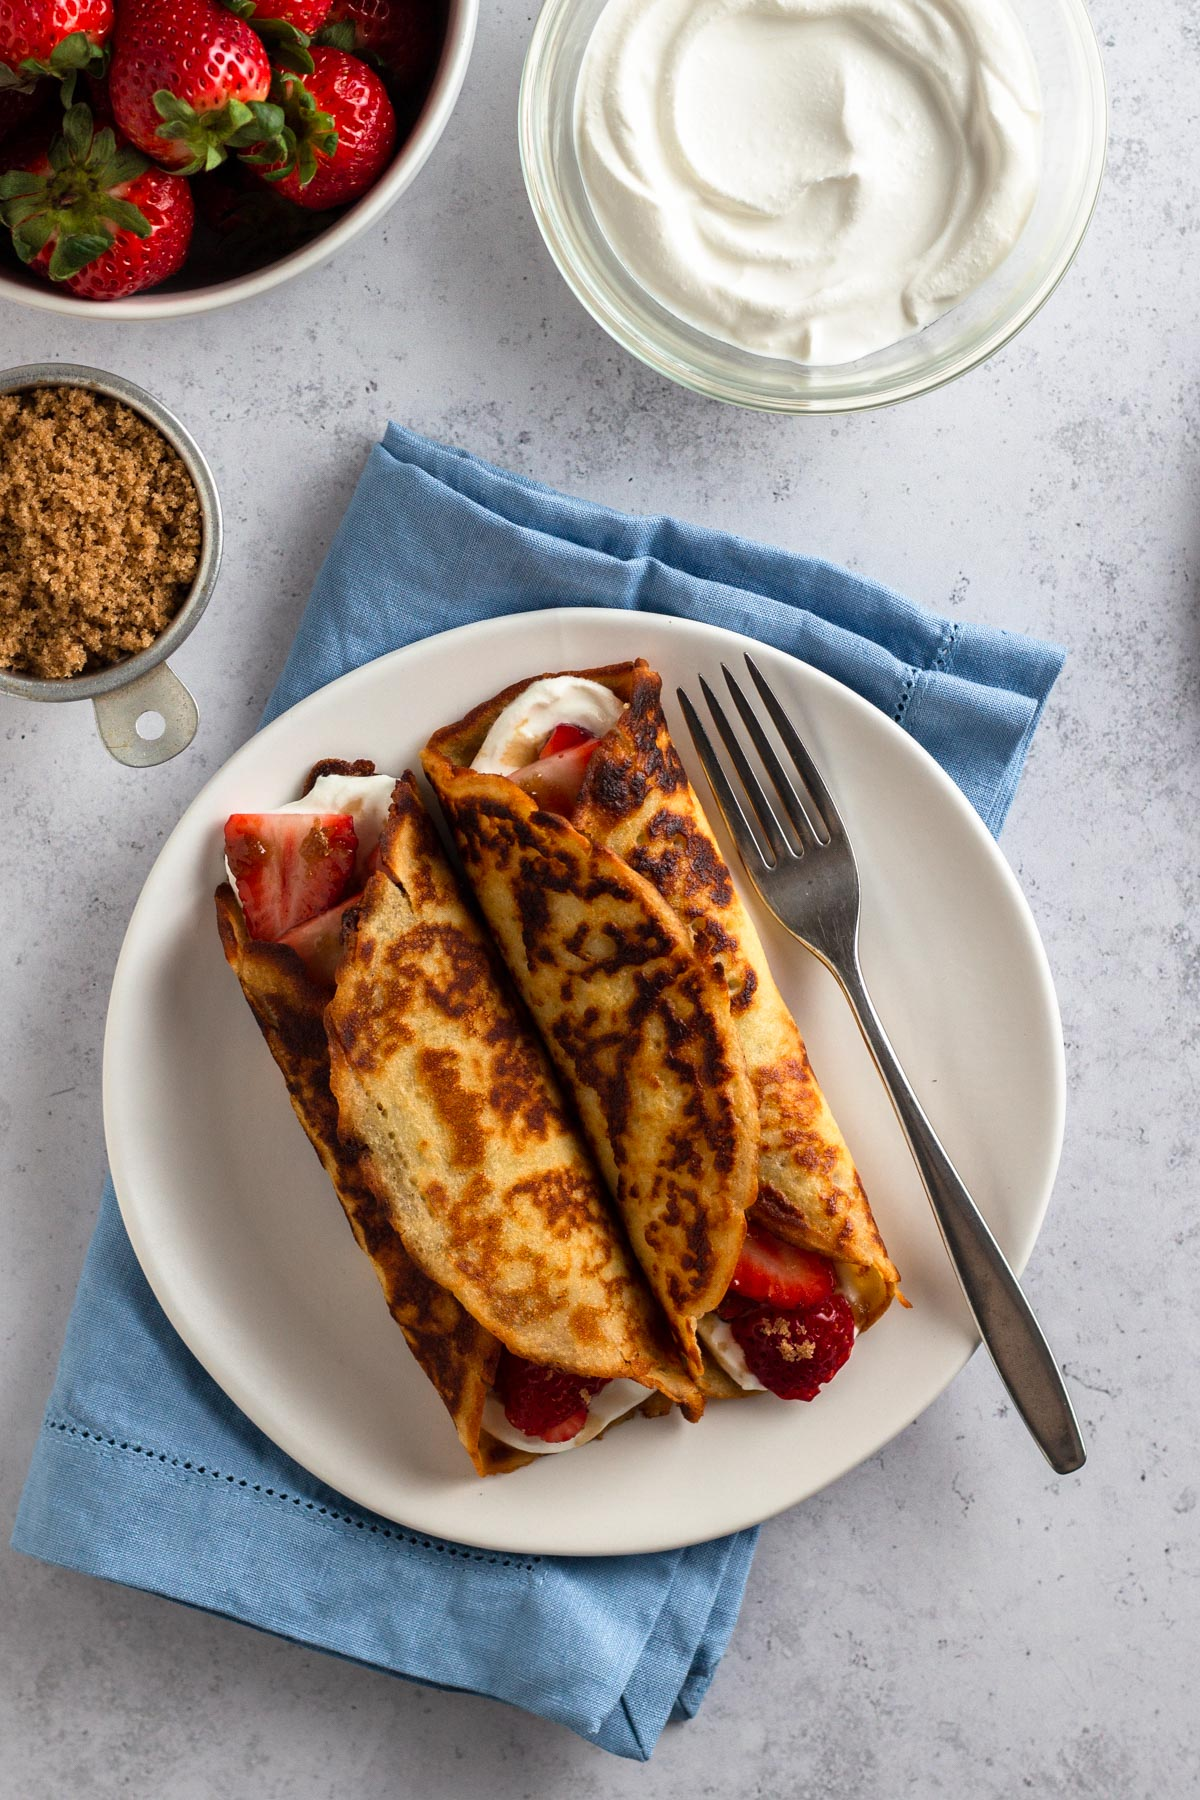 overhead view of rolled up crepe pancakes on a white plate with a blue napkin, brown sugar, sour cream, and fresh strawberries